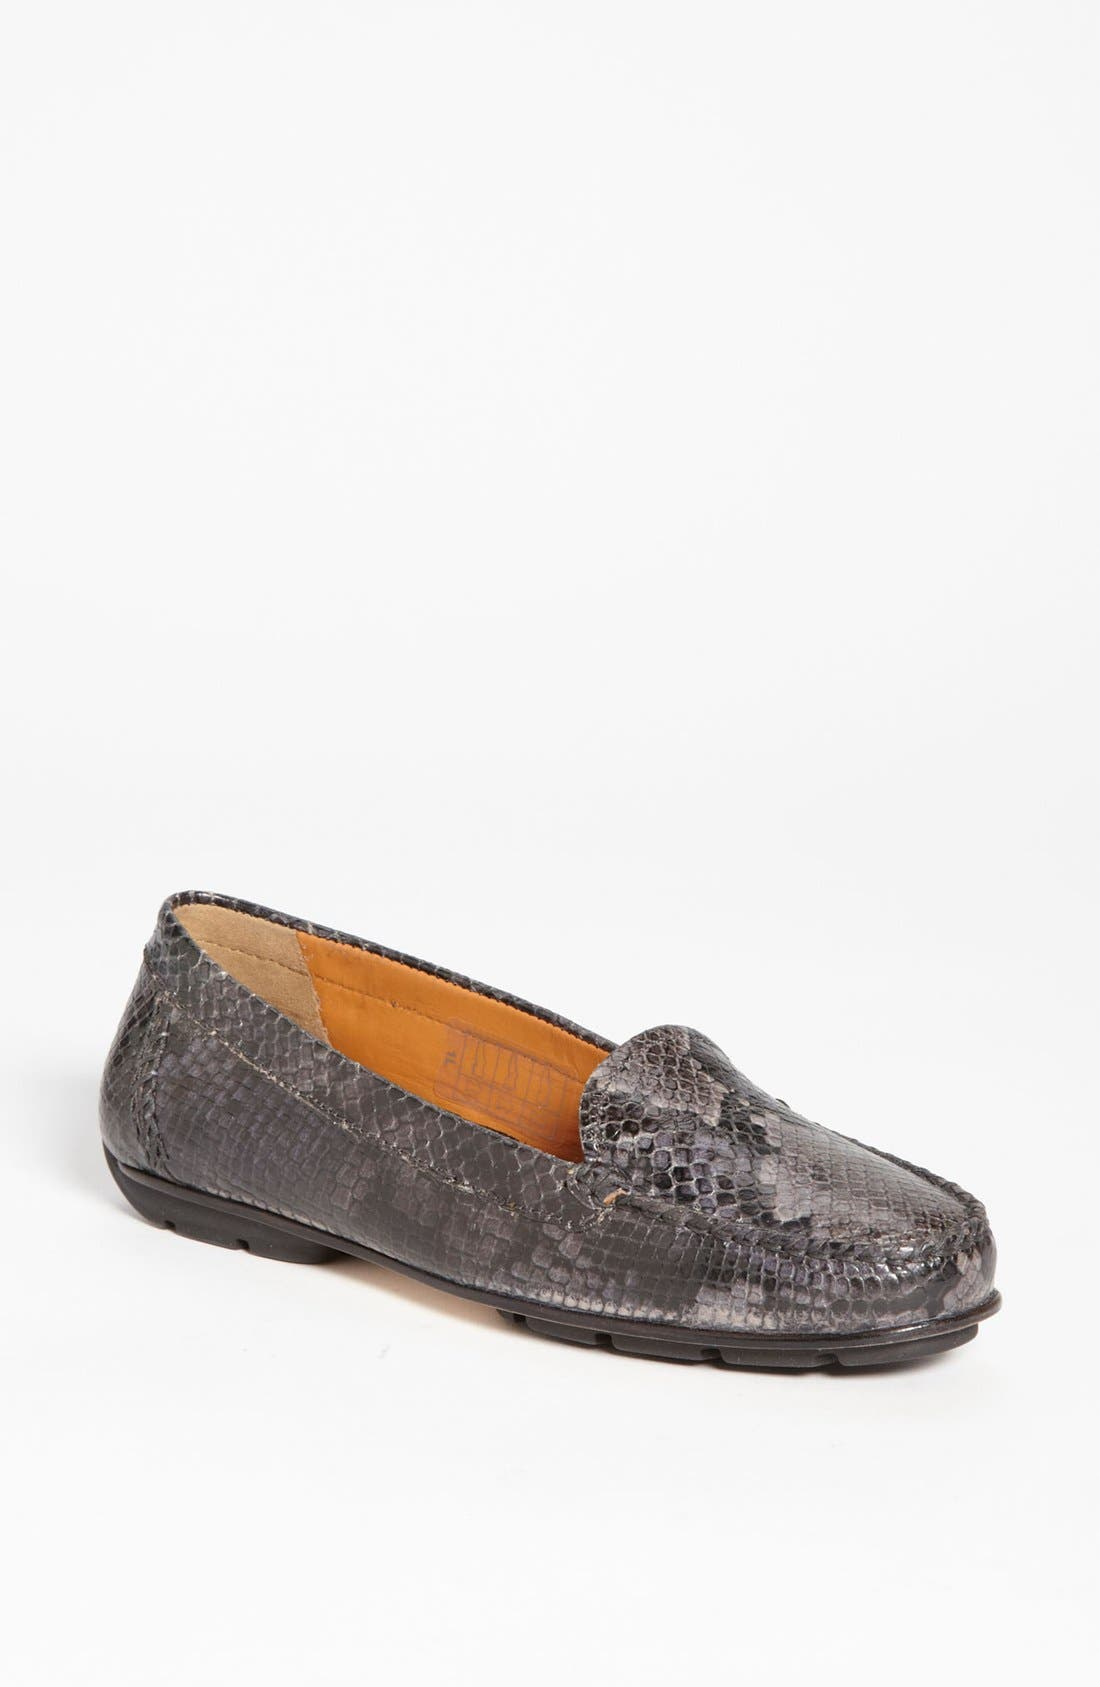 Main Image - Geox 'Italy' Snake Embossed Moccasin (Online Only Color)